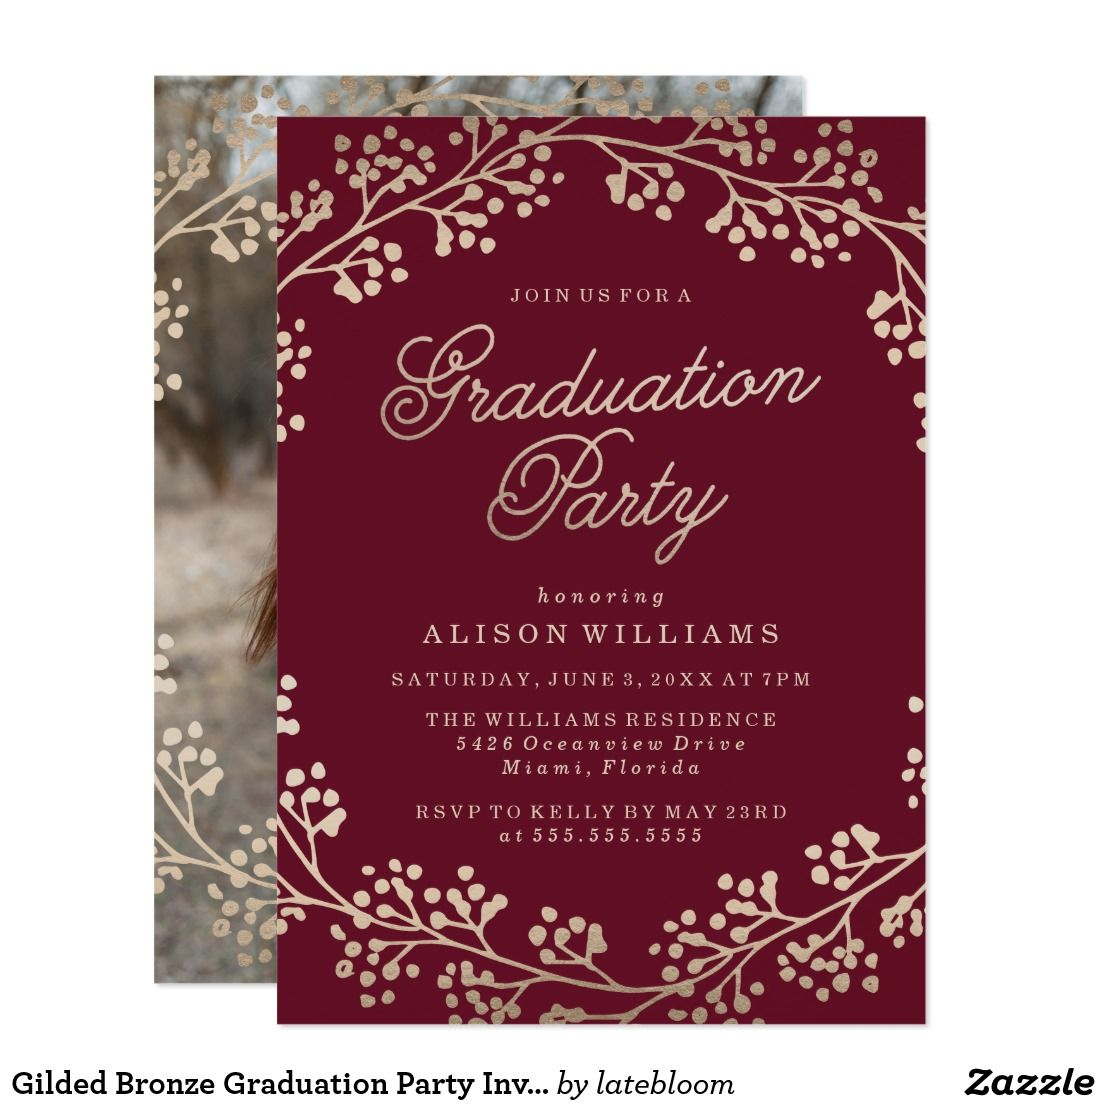 Gilded Bronze Graduation Party Invitation